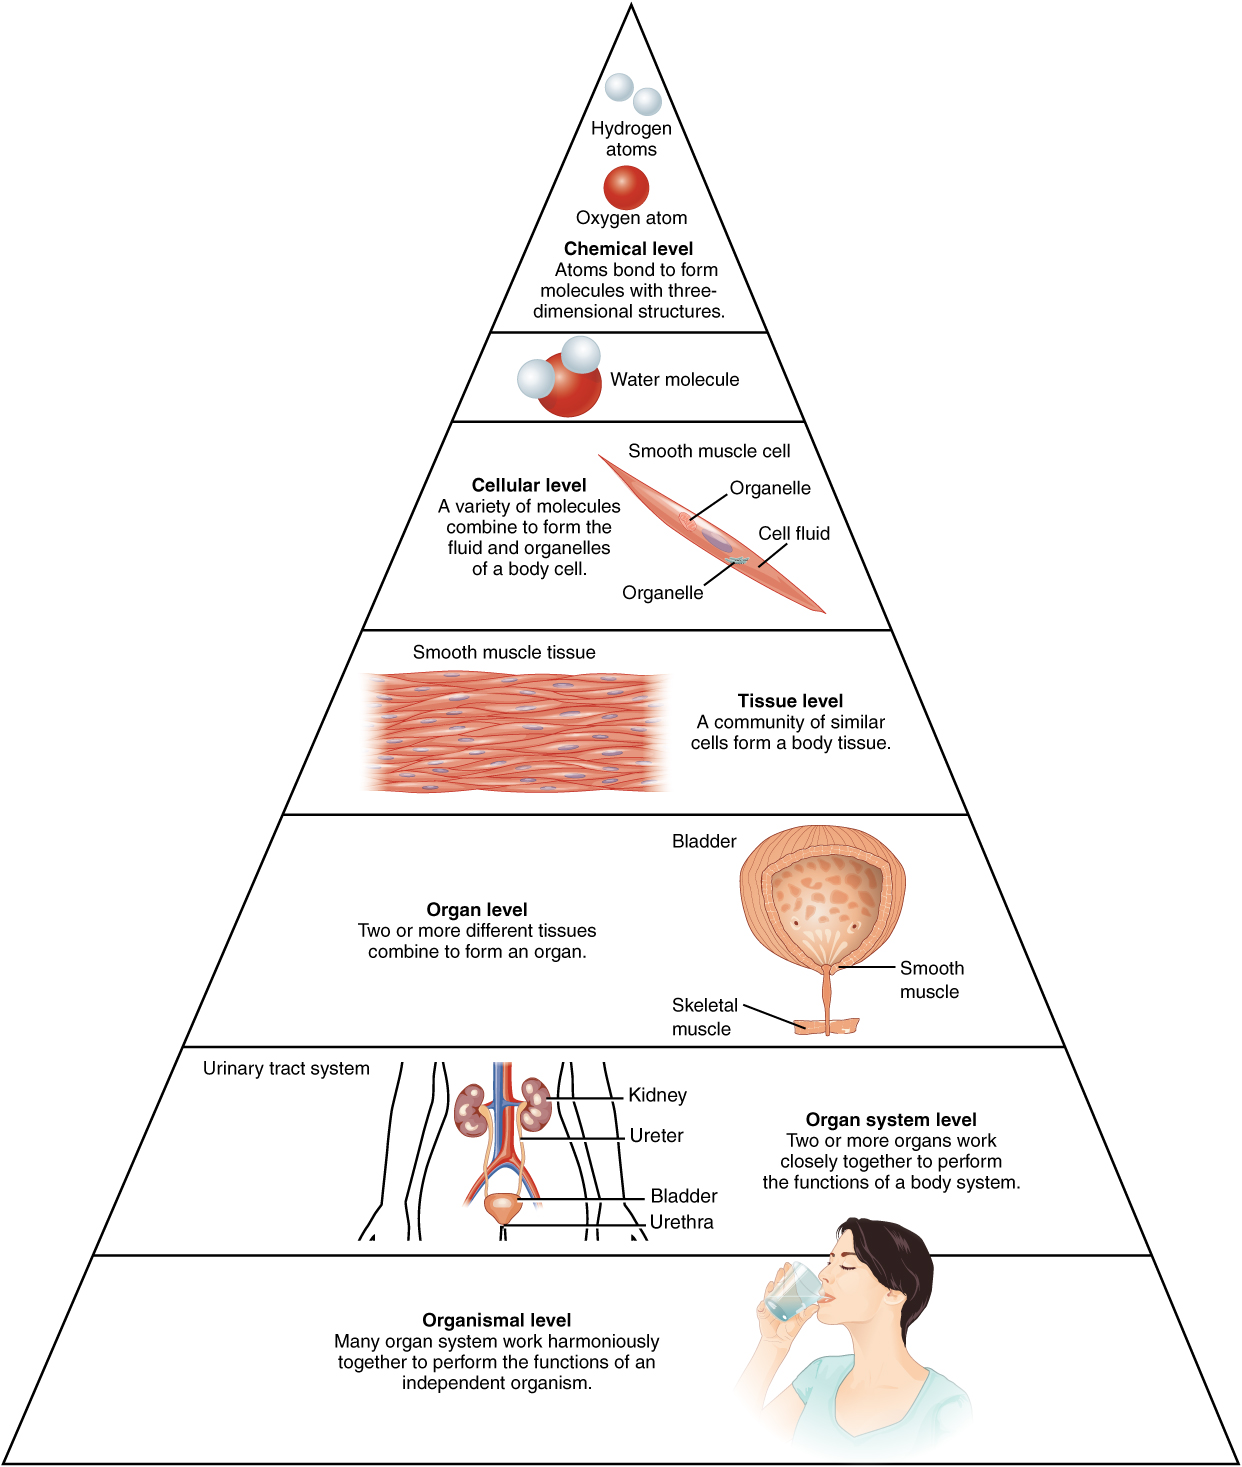 Structural Organization Of The Human Body Anatomy And Physiology